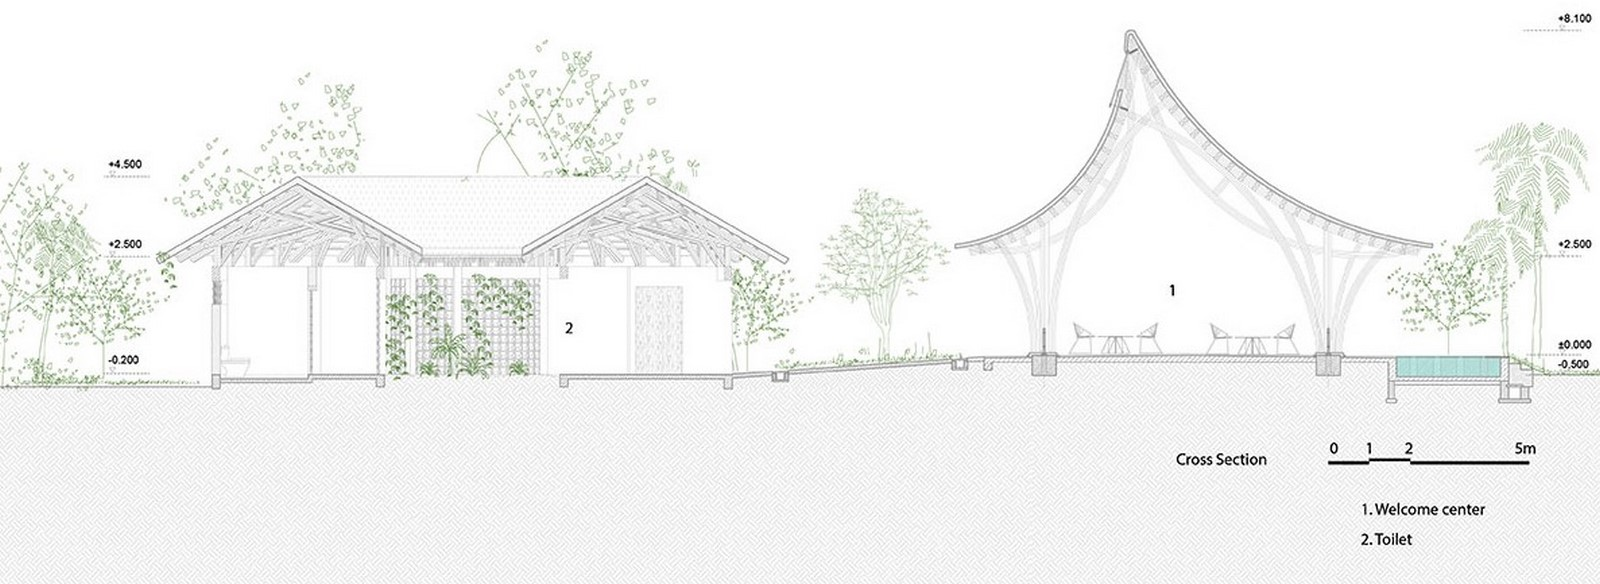 Highly-Curved Bamboo Roof For Visiting Center For Huong An Vien Cemetery created by VTN Architects - Sheet2